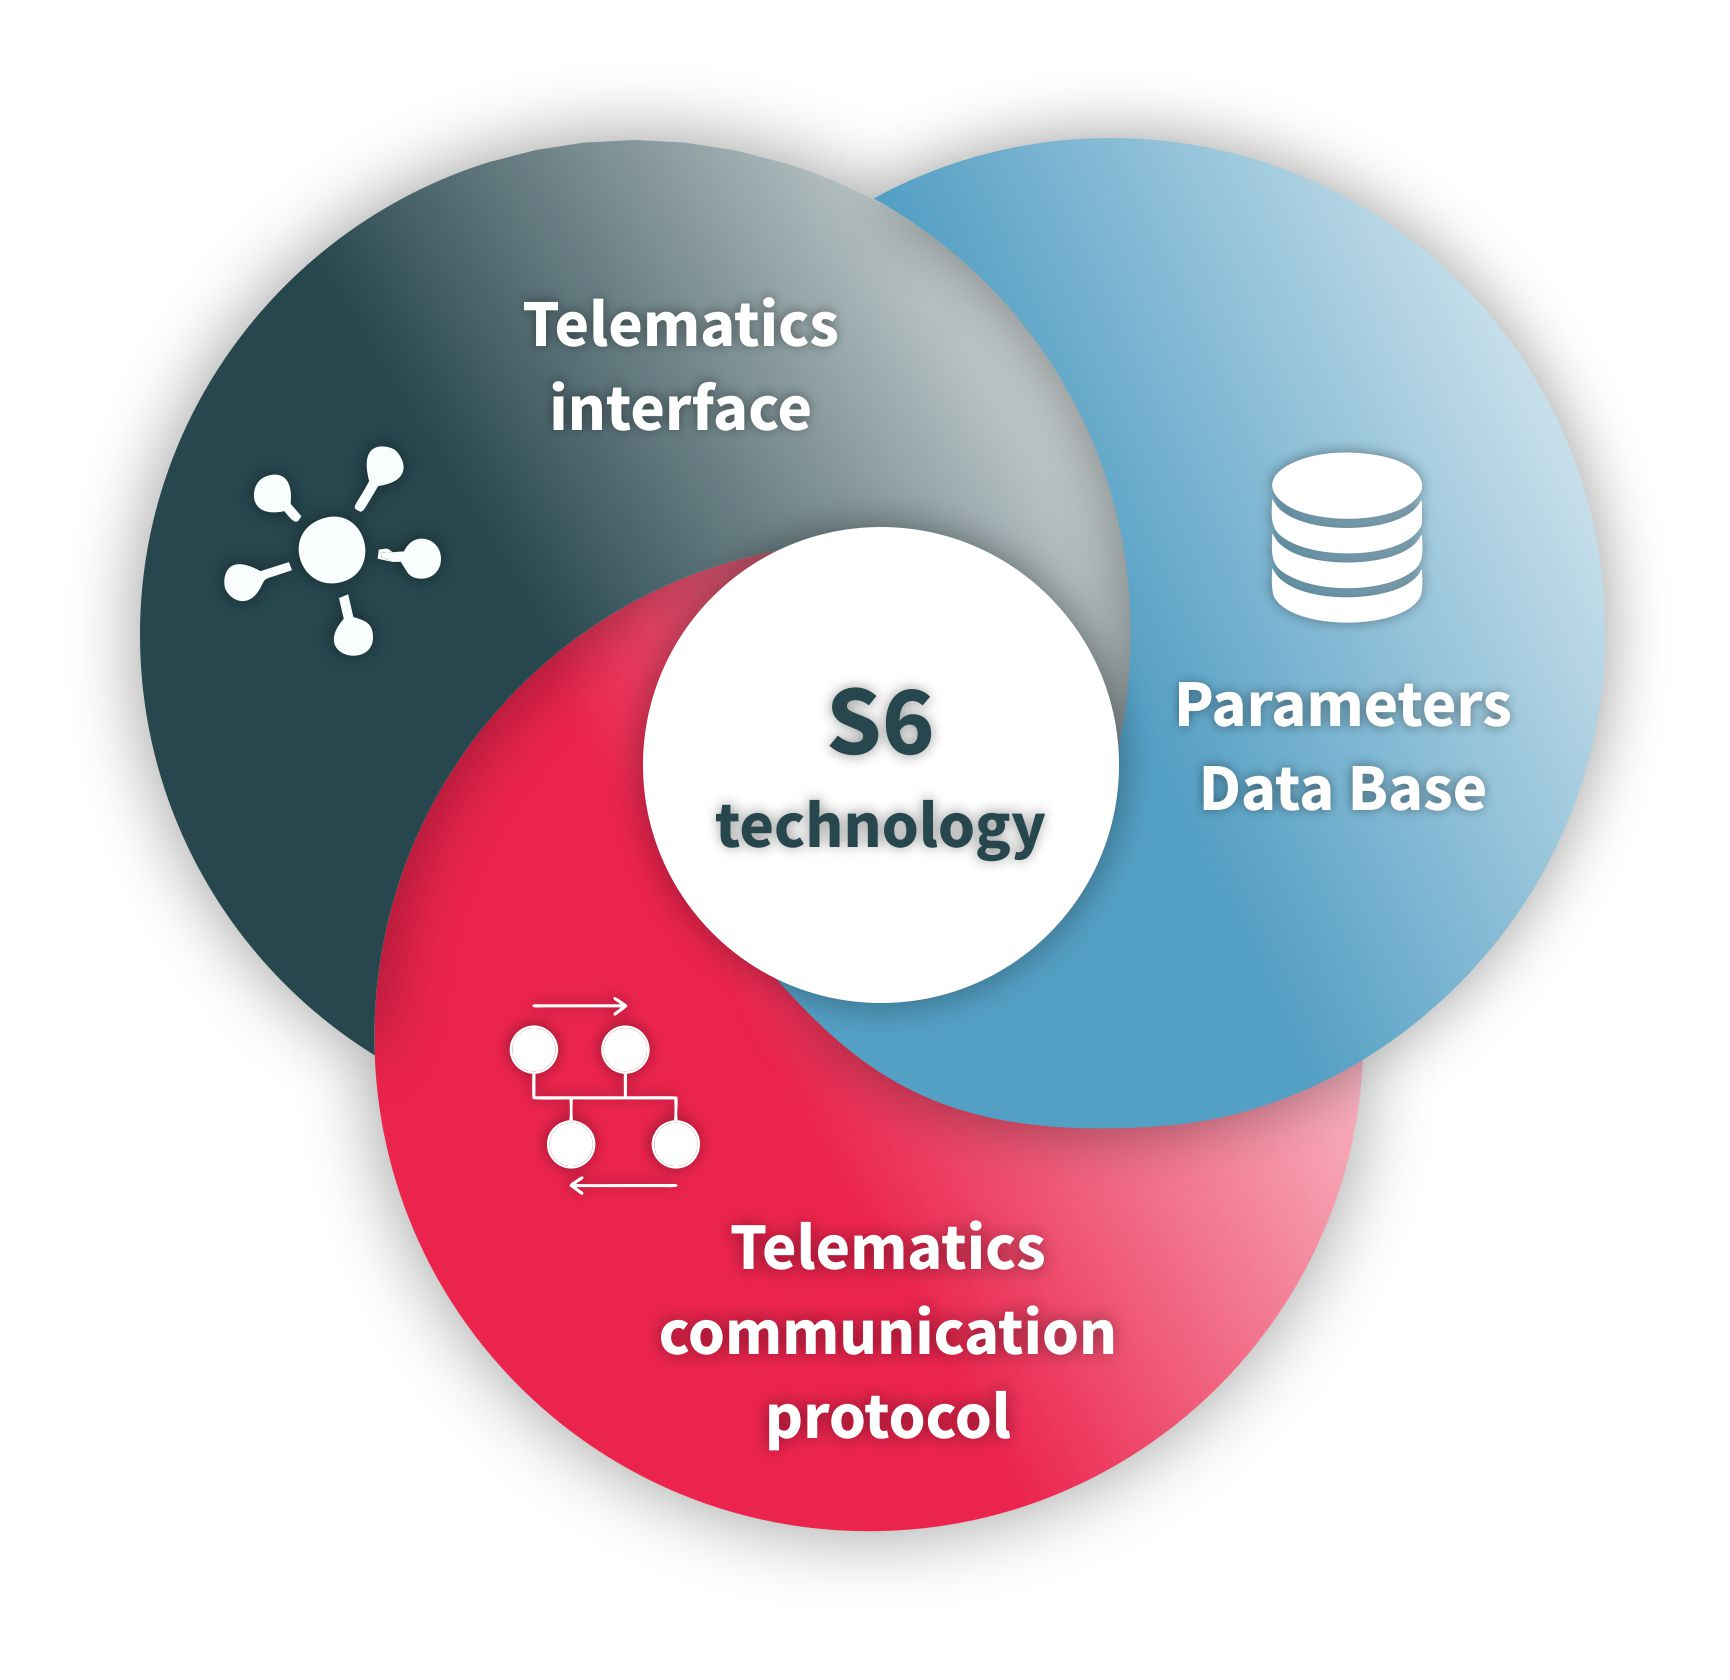 Elements of S6 technology